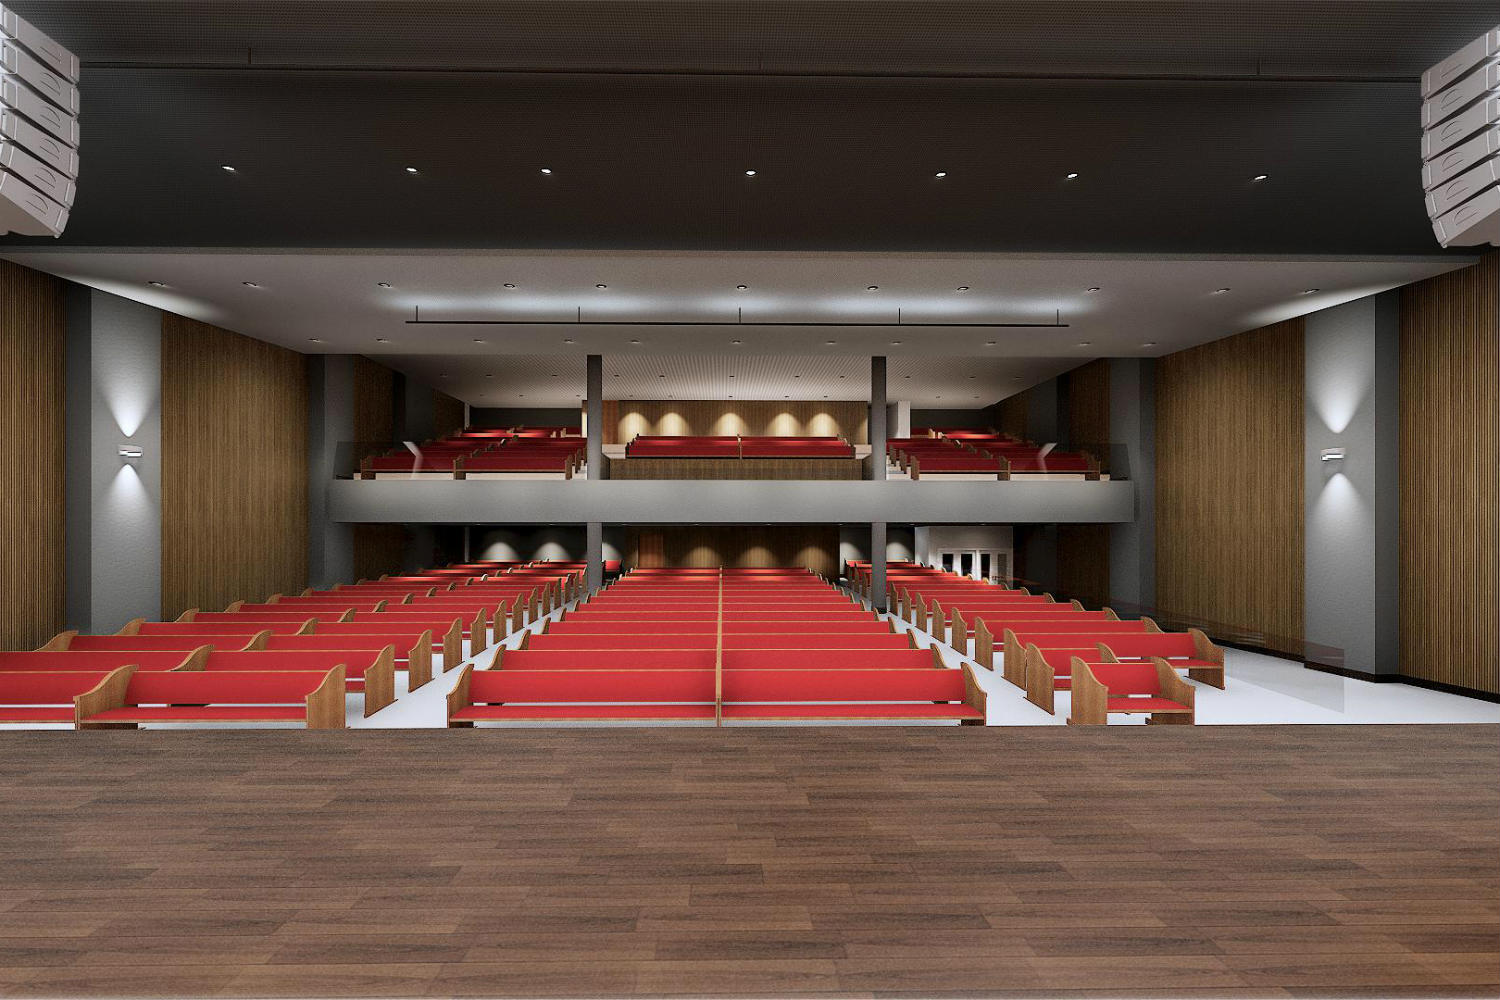 IBP has created a contemporary house of worship in São José. By engaging WSDG at the design stage, the Church planners were assured of providing their parishioners with superb acoustics for their worship services. Render 5